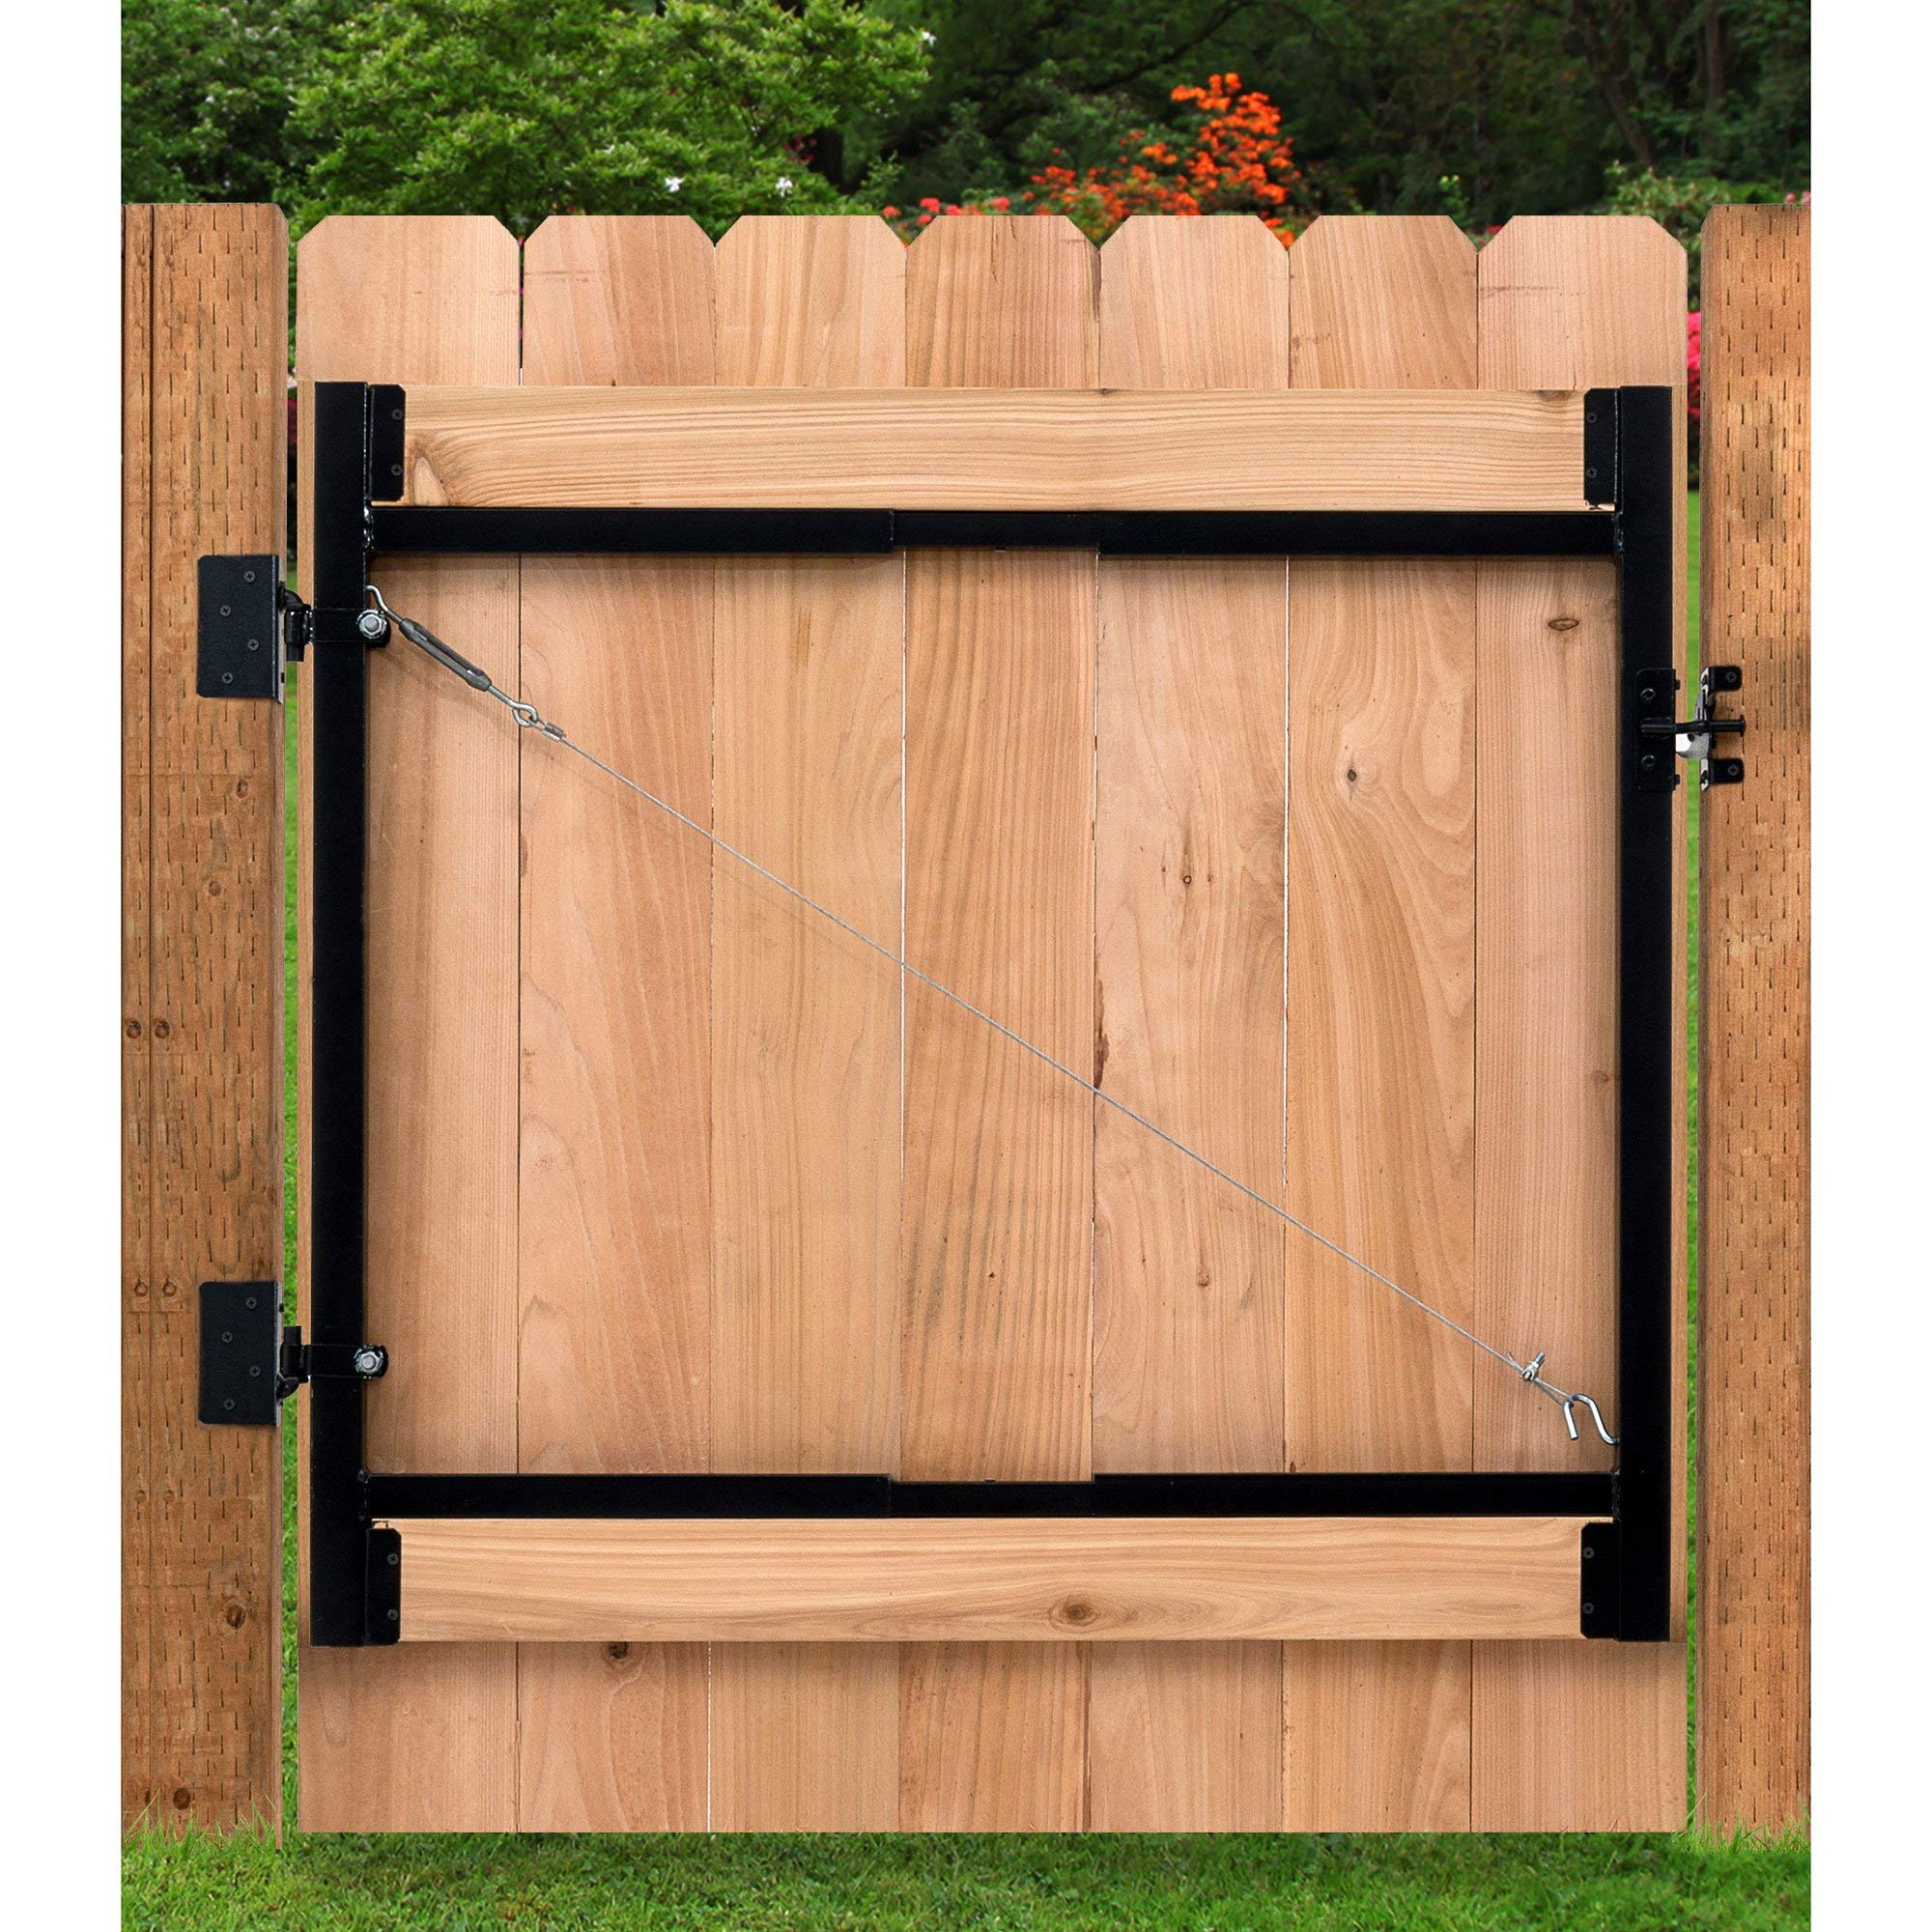 Adjust-A-Gate Steel Frame Gate Building Kit, 60''-96'' Wide Opening Up to 4' High (2 Pack) by Adjust-A-Gate (Image #4)